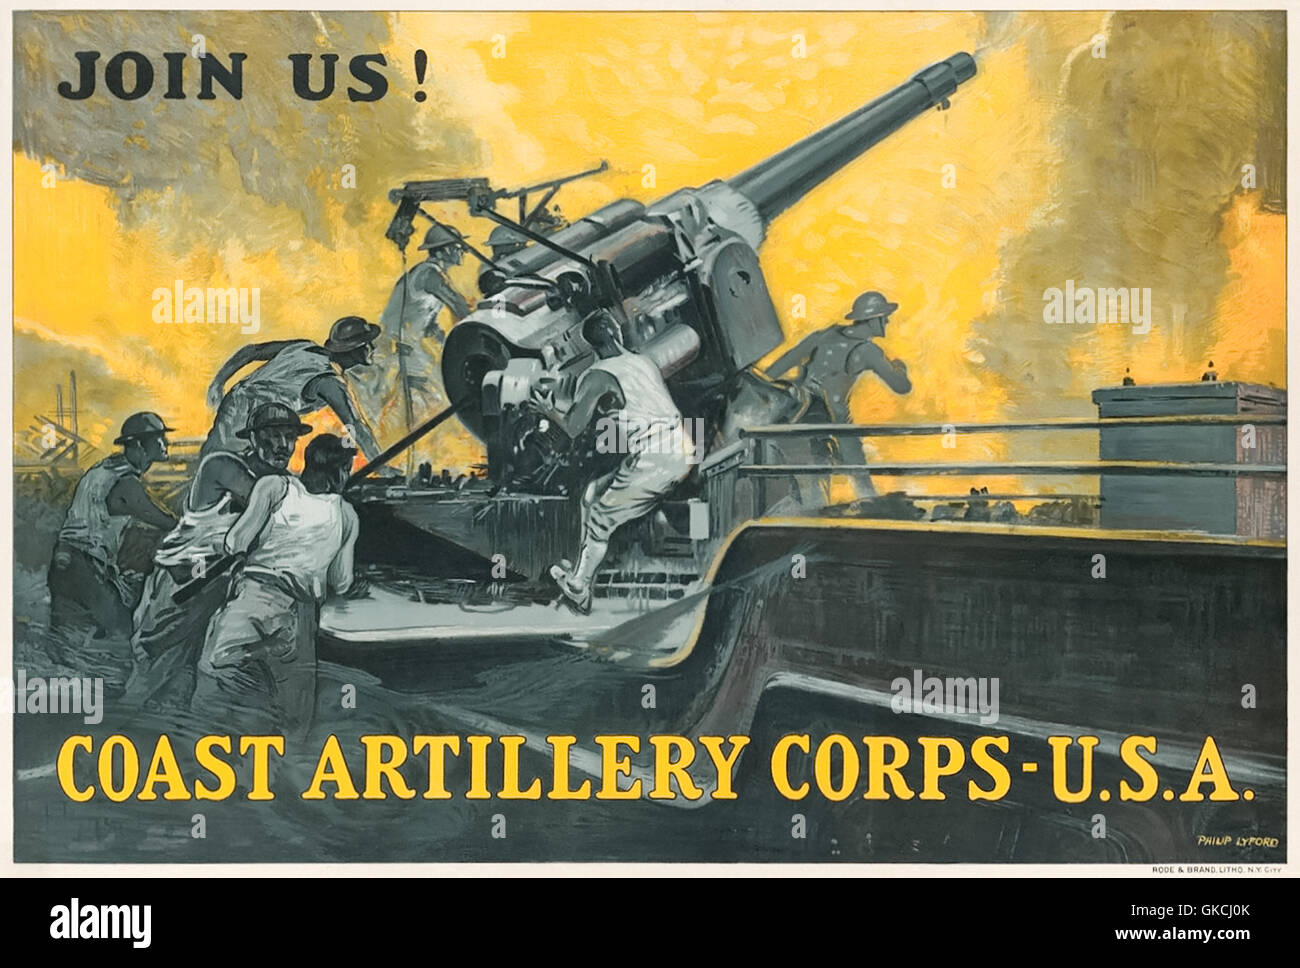 """""""JOIN US! COAST ARTILLERY CORPS USA"""" 1914-18 World War I recruitment poster for the US Army Coast Artillery Corps - Stock Image"""